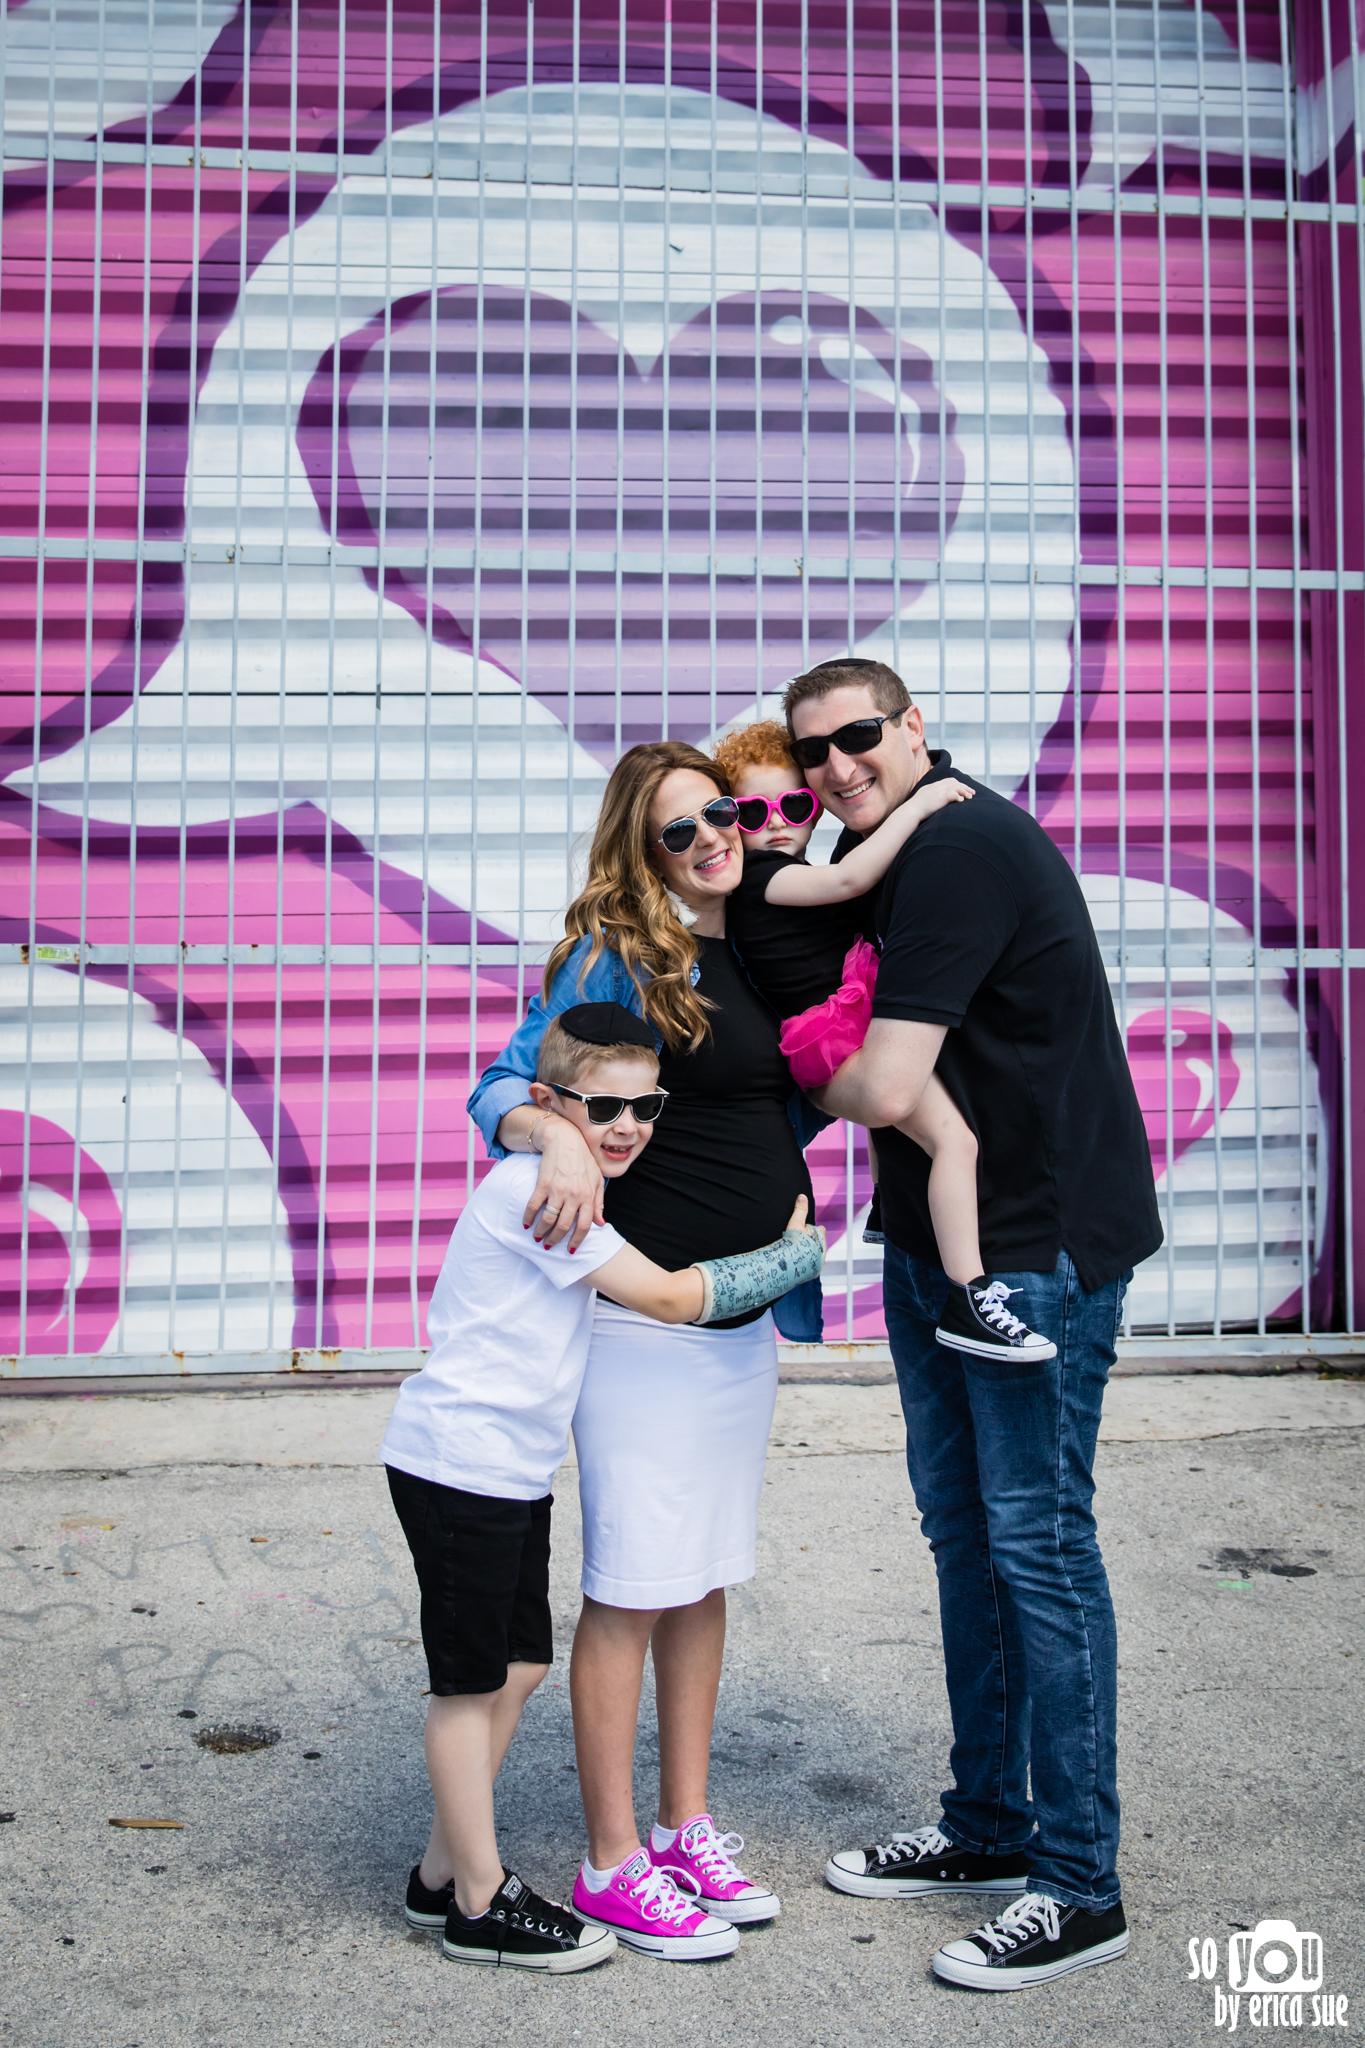 wynwood-family-photography-so-you-by-erica-sue-ft-lauderdale-davie-miami-fl-florida-2881.jpg